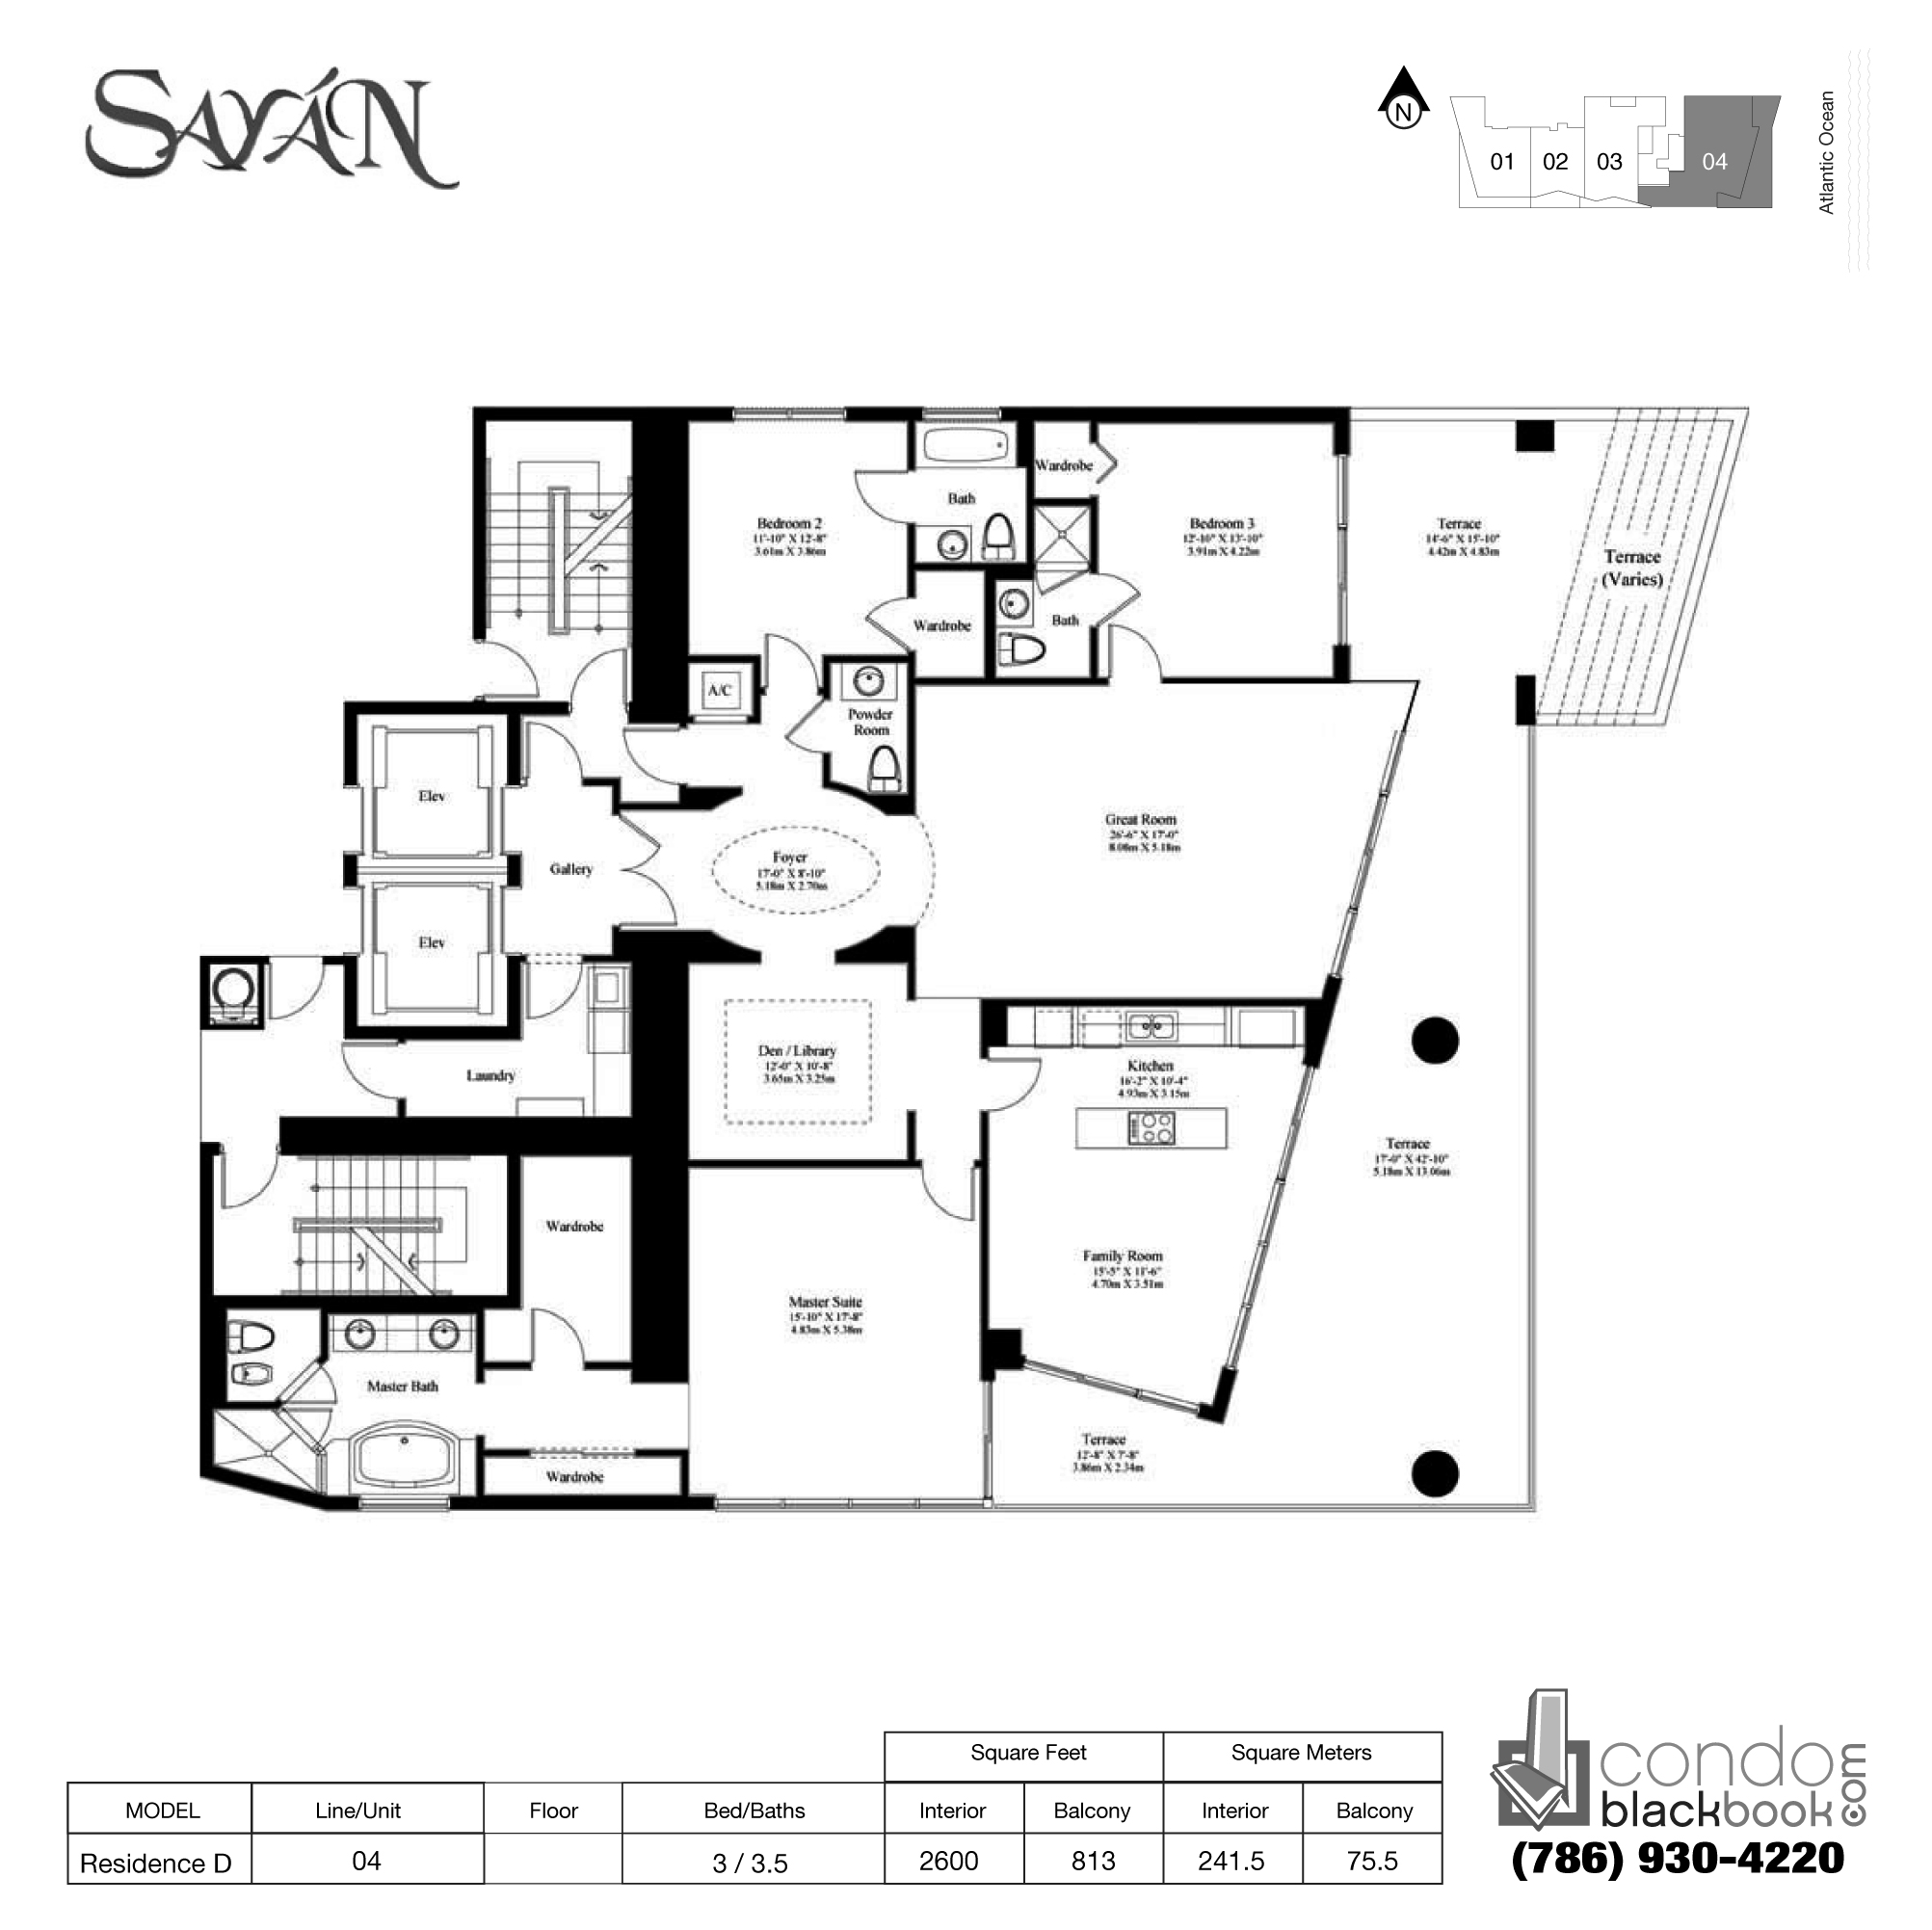 Floor plan for Sayan Sunny Isles Beach, model Residence D, line 04, 3/ 3.5 bedrooms, 2600 sq ft